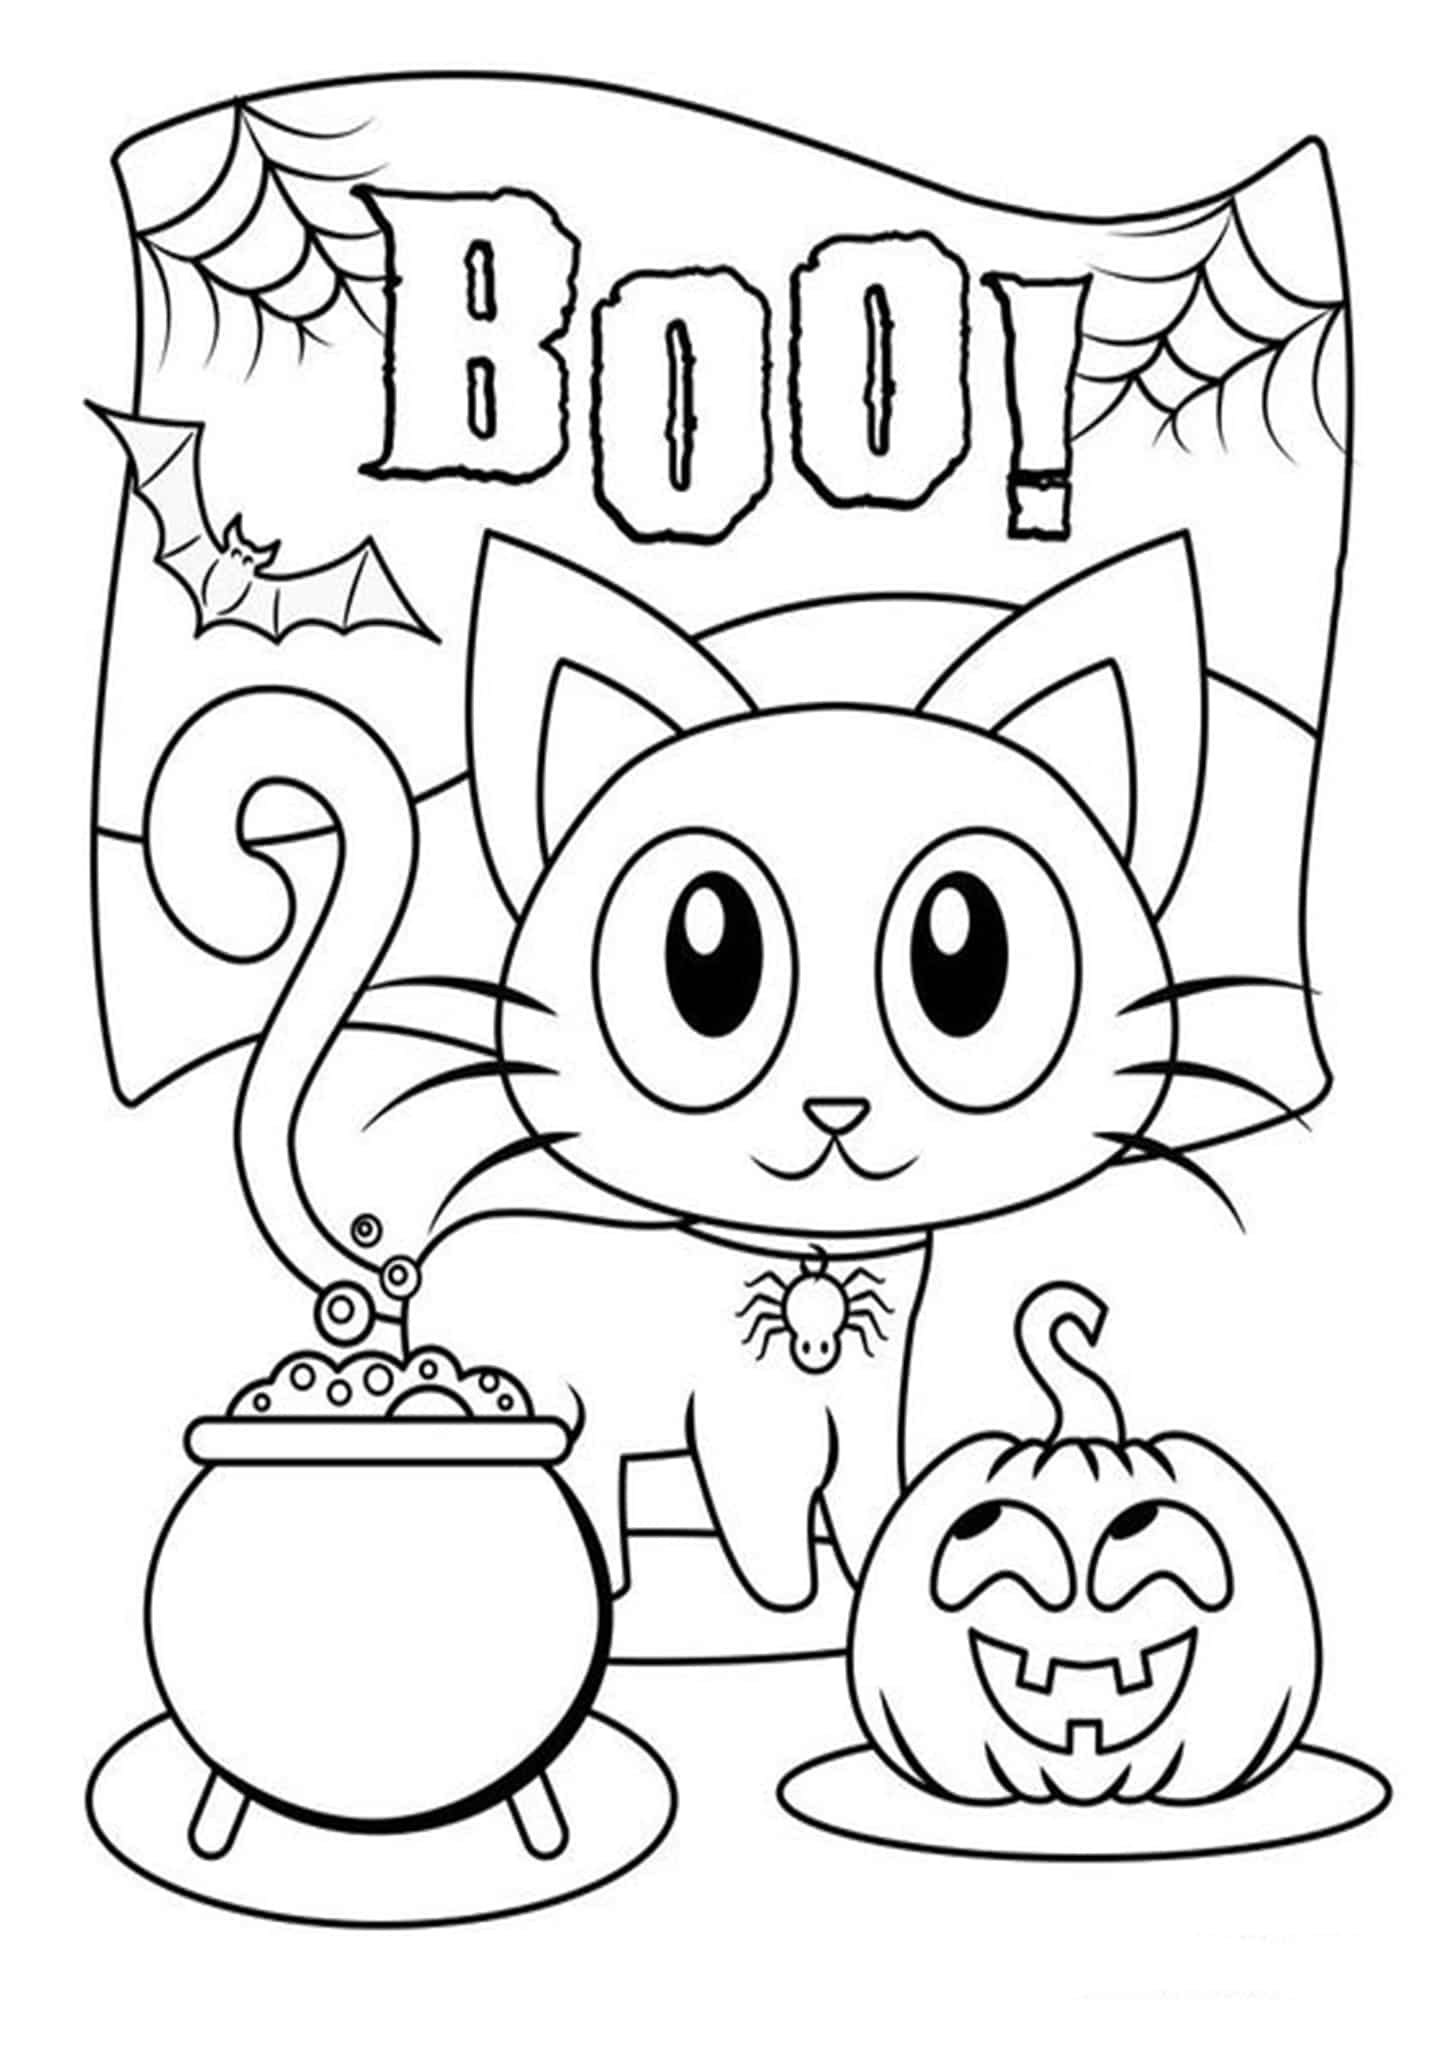 pretty coloring sheets cute girly coloring pages coloring home sheets coloring pretty